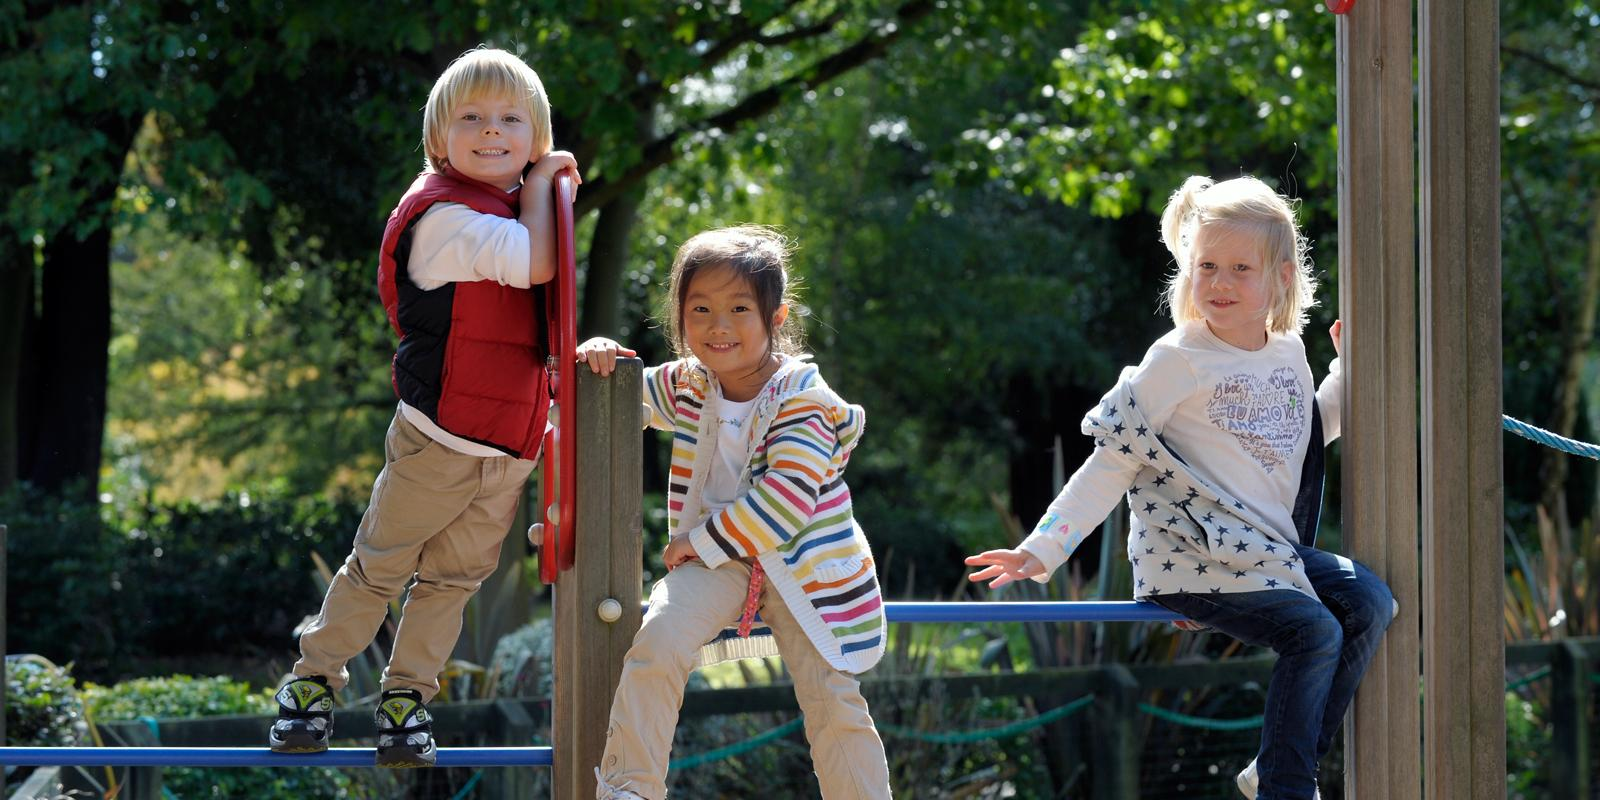 ACS Egham Lower School students playing in the playground